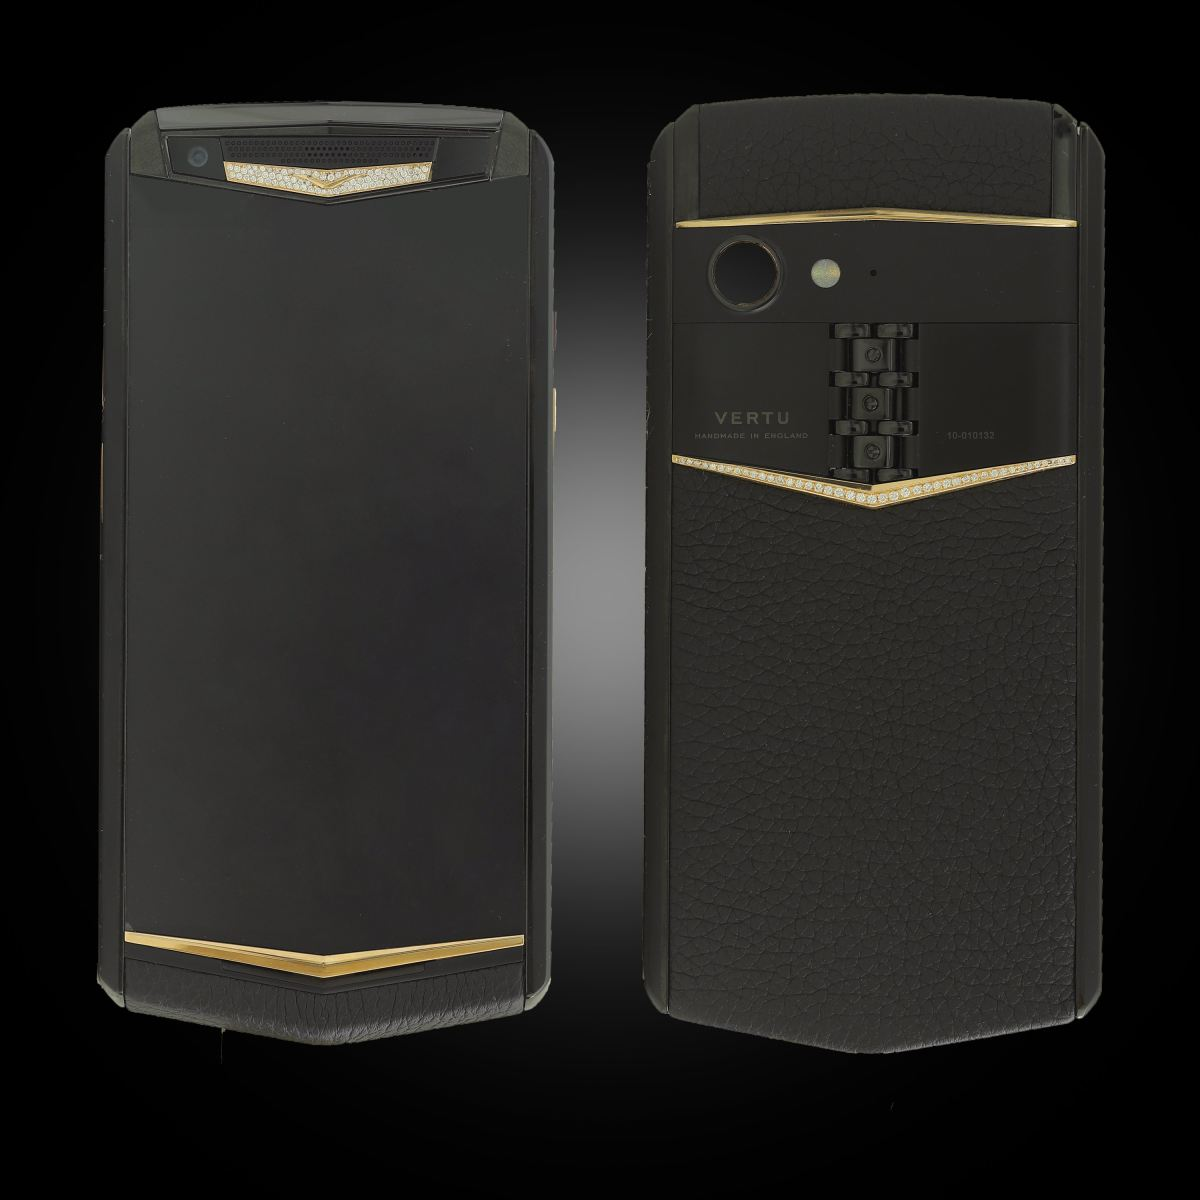 Vertu Aster P Jade Black Mix Gold Diamond